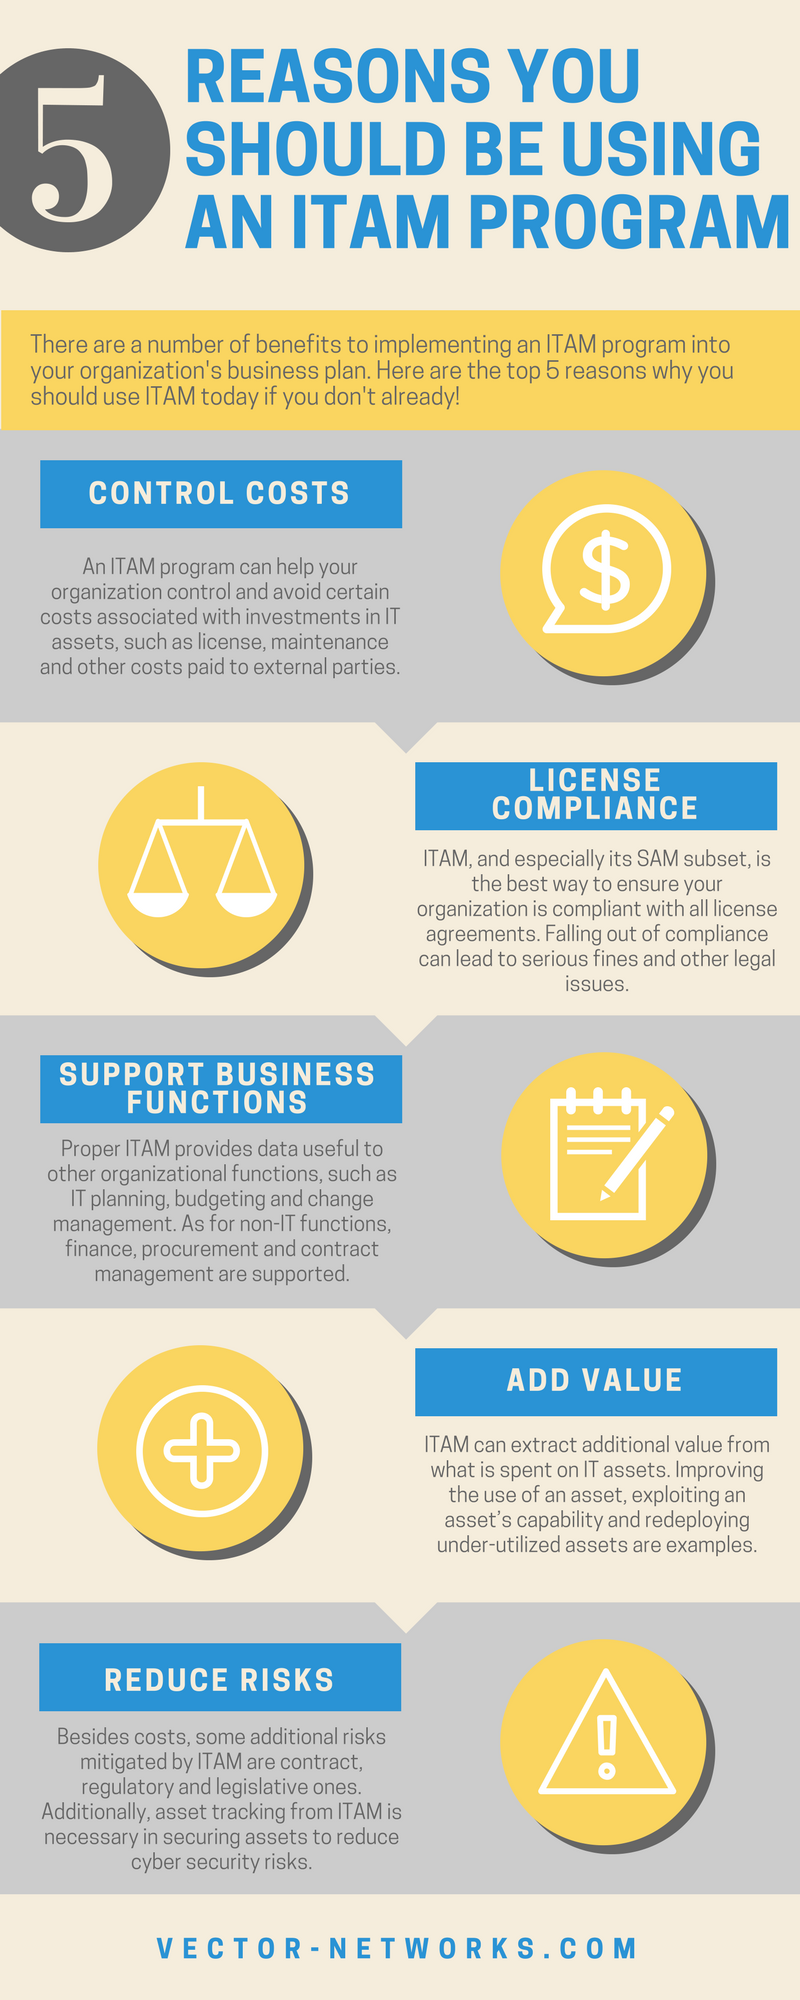 5 Reasons to implement a ITAM program